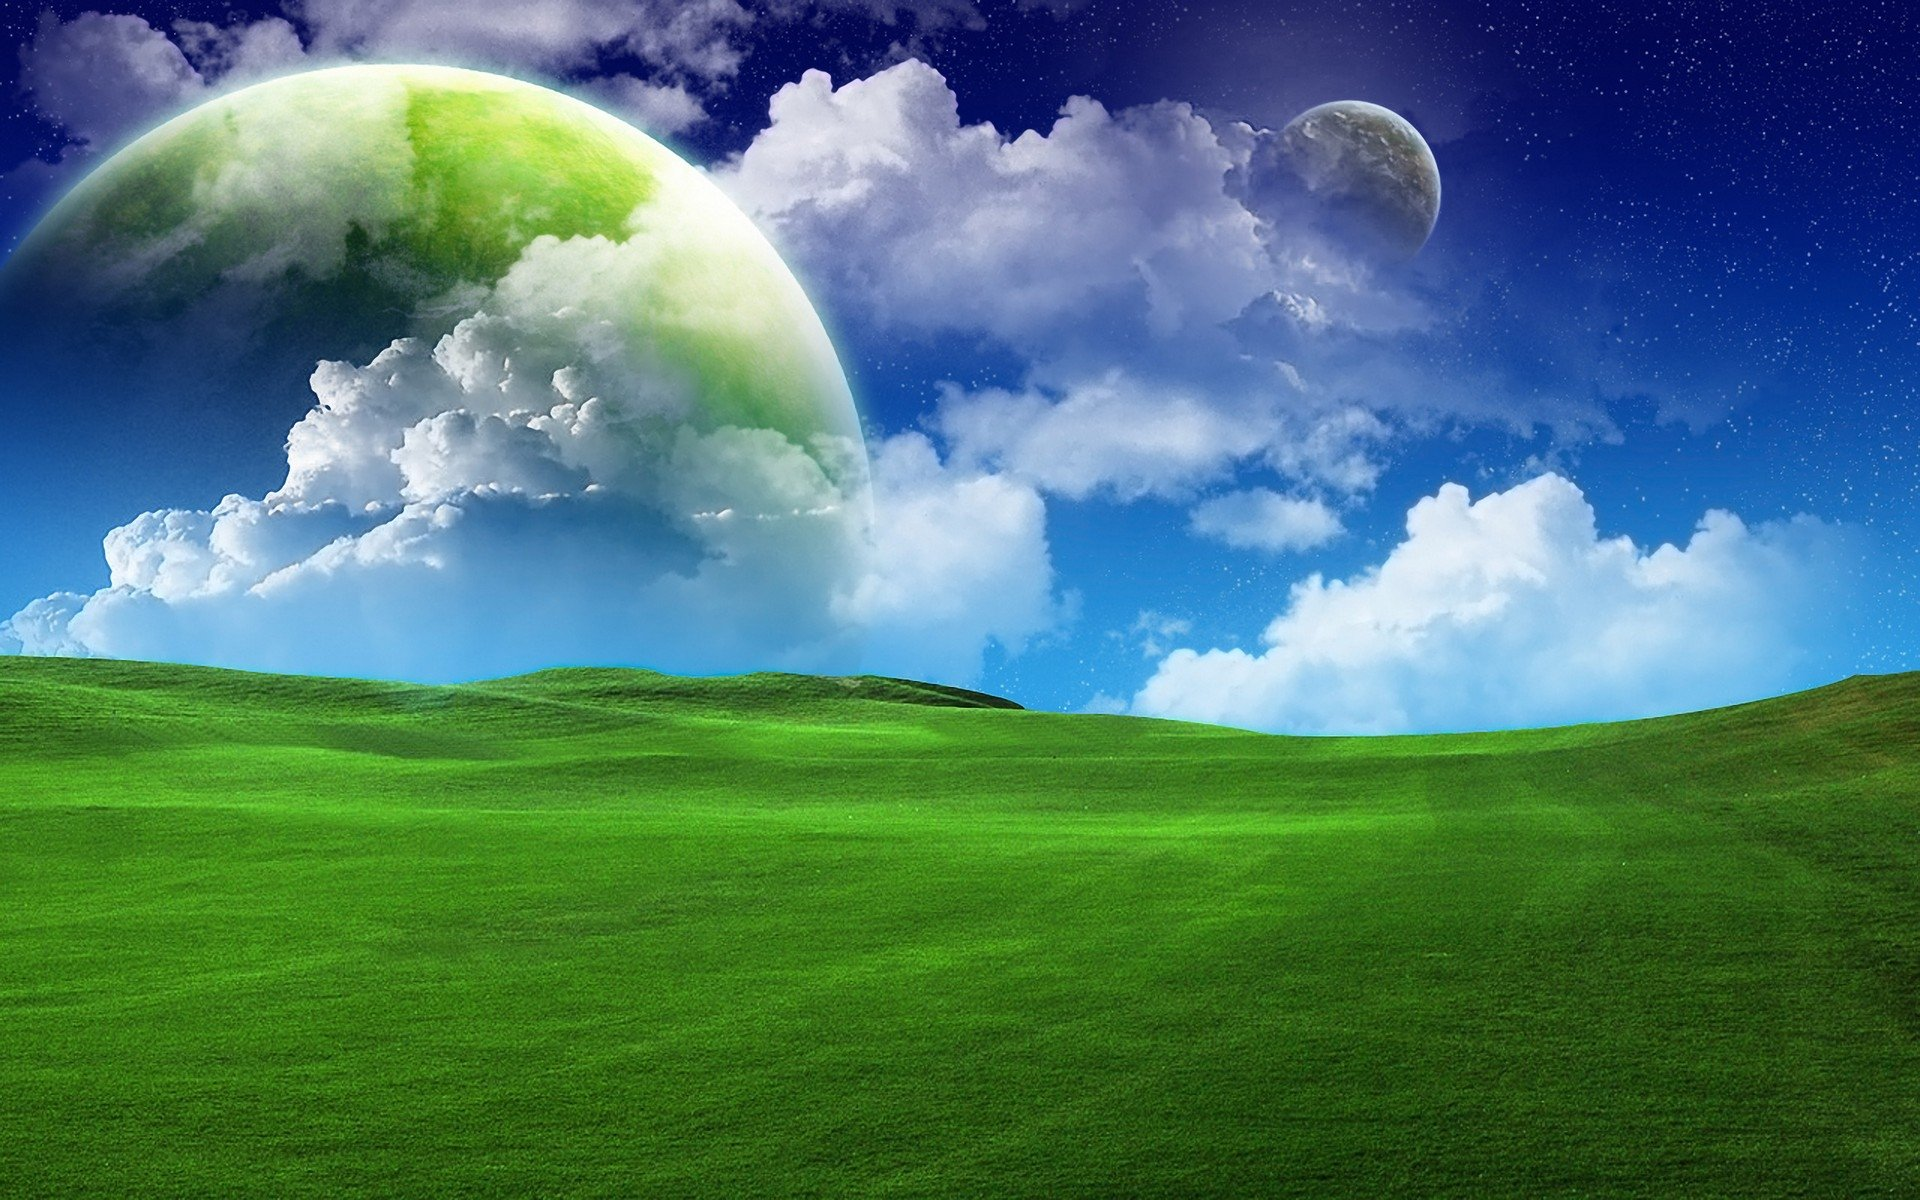 Science-Fiction - Landschaft  Planet Sterne Grün Feld Himmel Wolke Weltraum Wallpaper